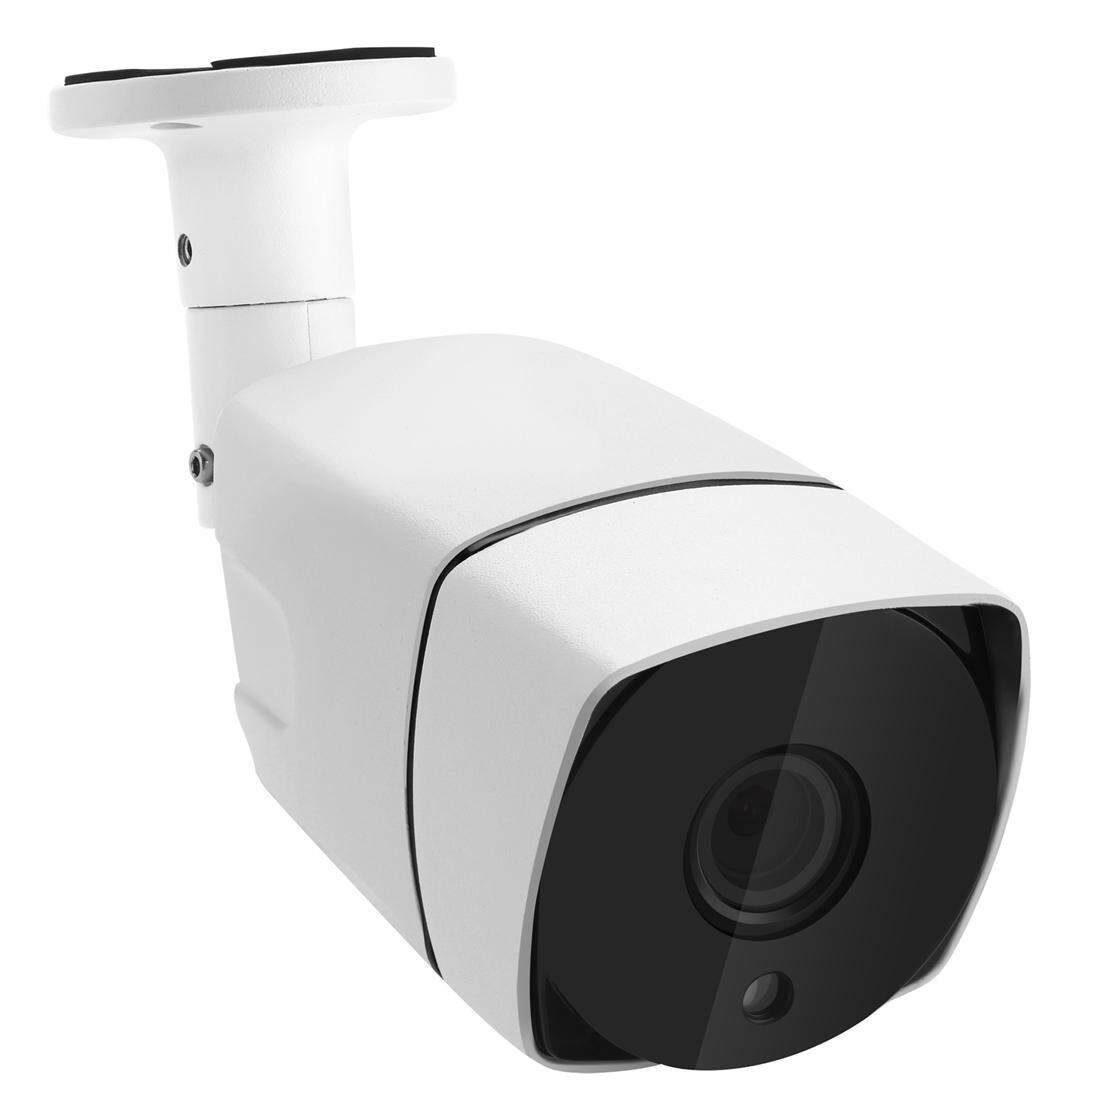 COTIER TV-657H5/IP MF POE Indoor Manual Focus 4X Zoom Surveillance IP Camera, 5.0MP CMOS Sensor, Support Motion Detection, P2P/ONVIF, 42 LED 20m IR Night Vision (White)